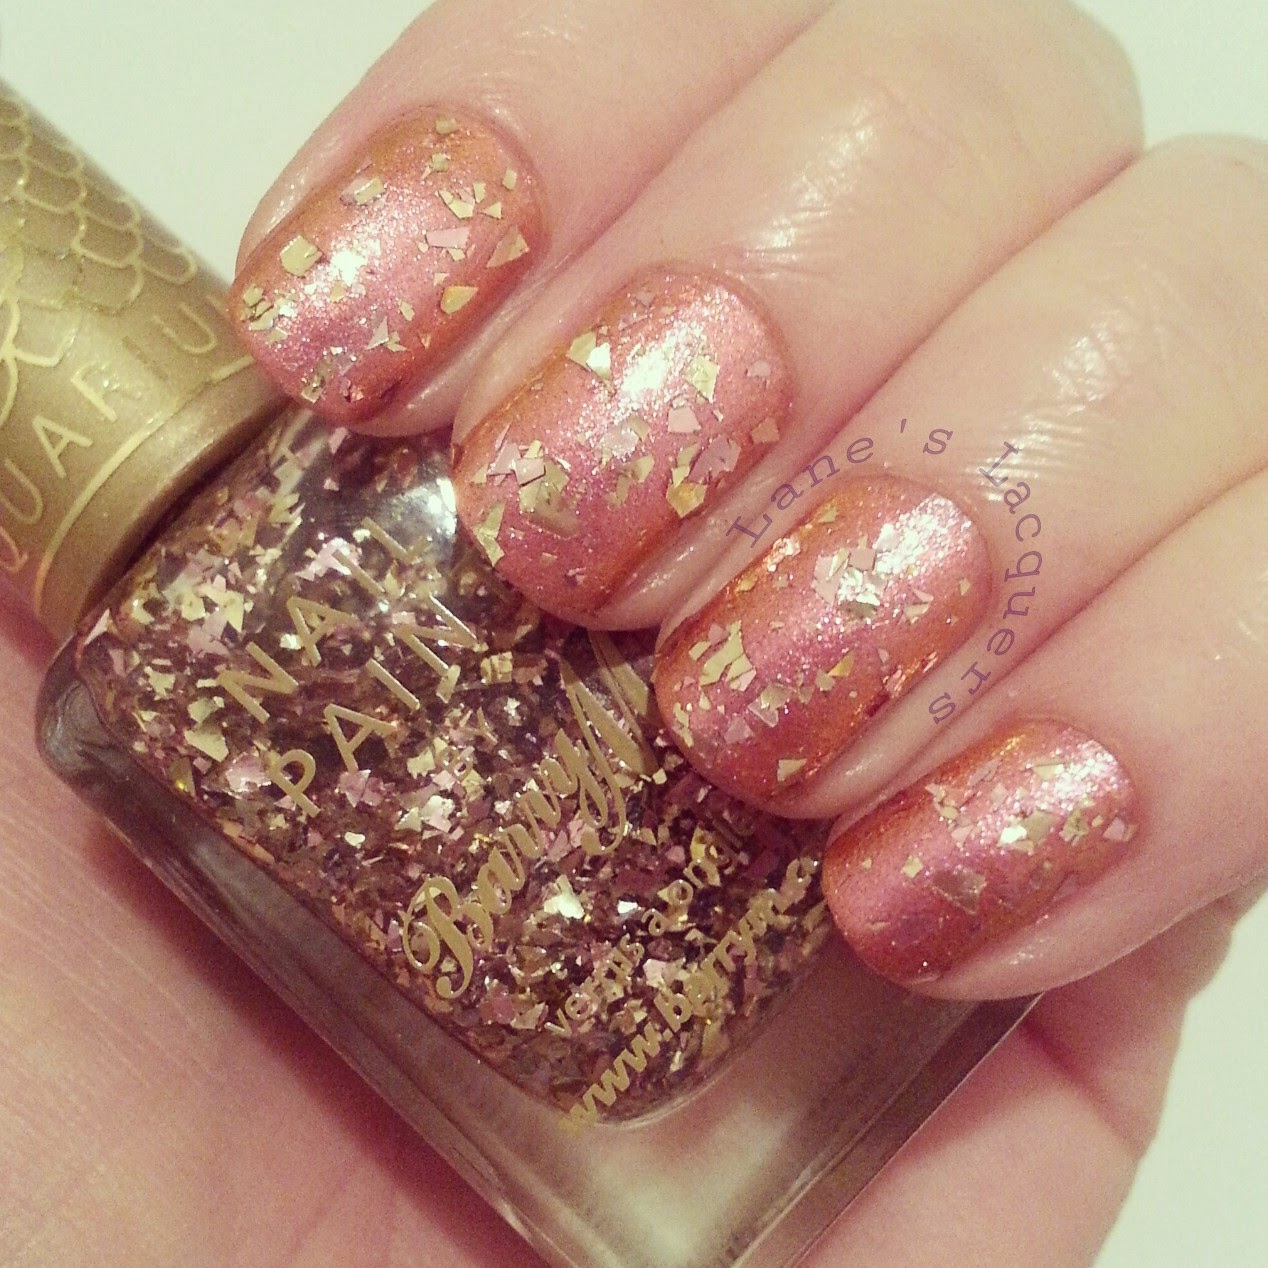 barry-m-aquarium-pink-and-glitter-aqnp2-swatch-nails